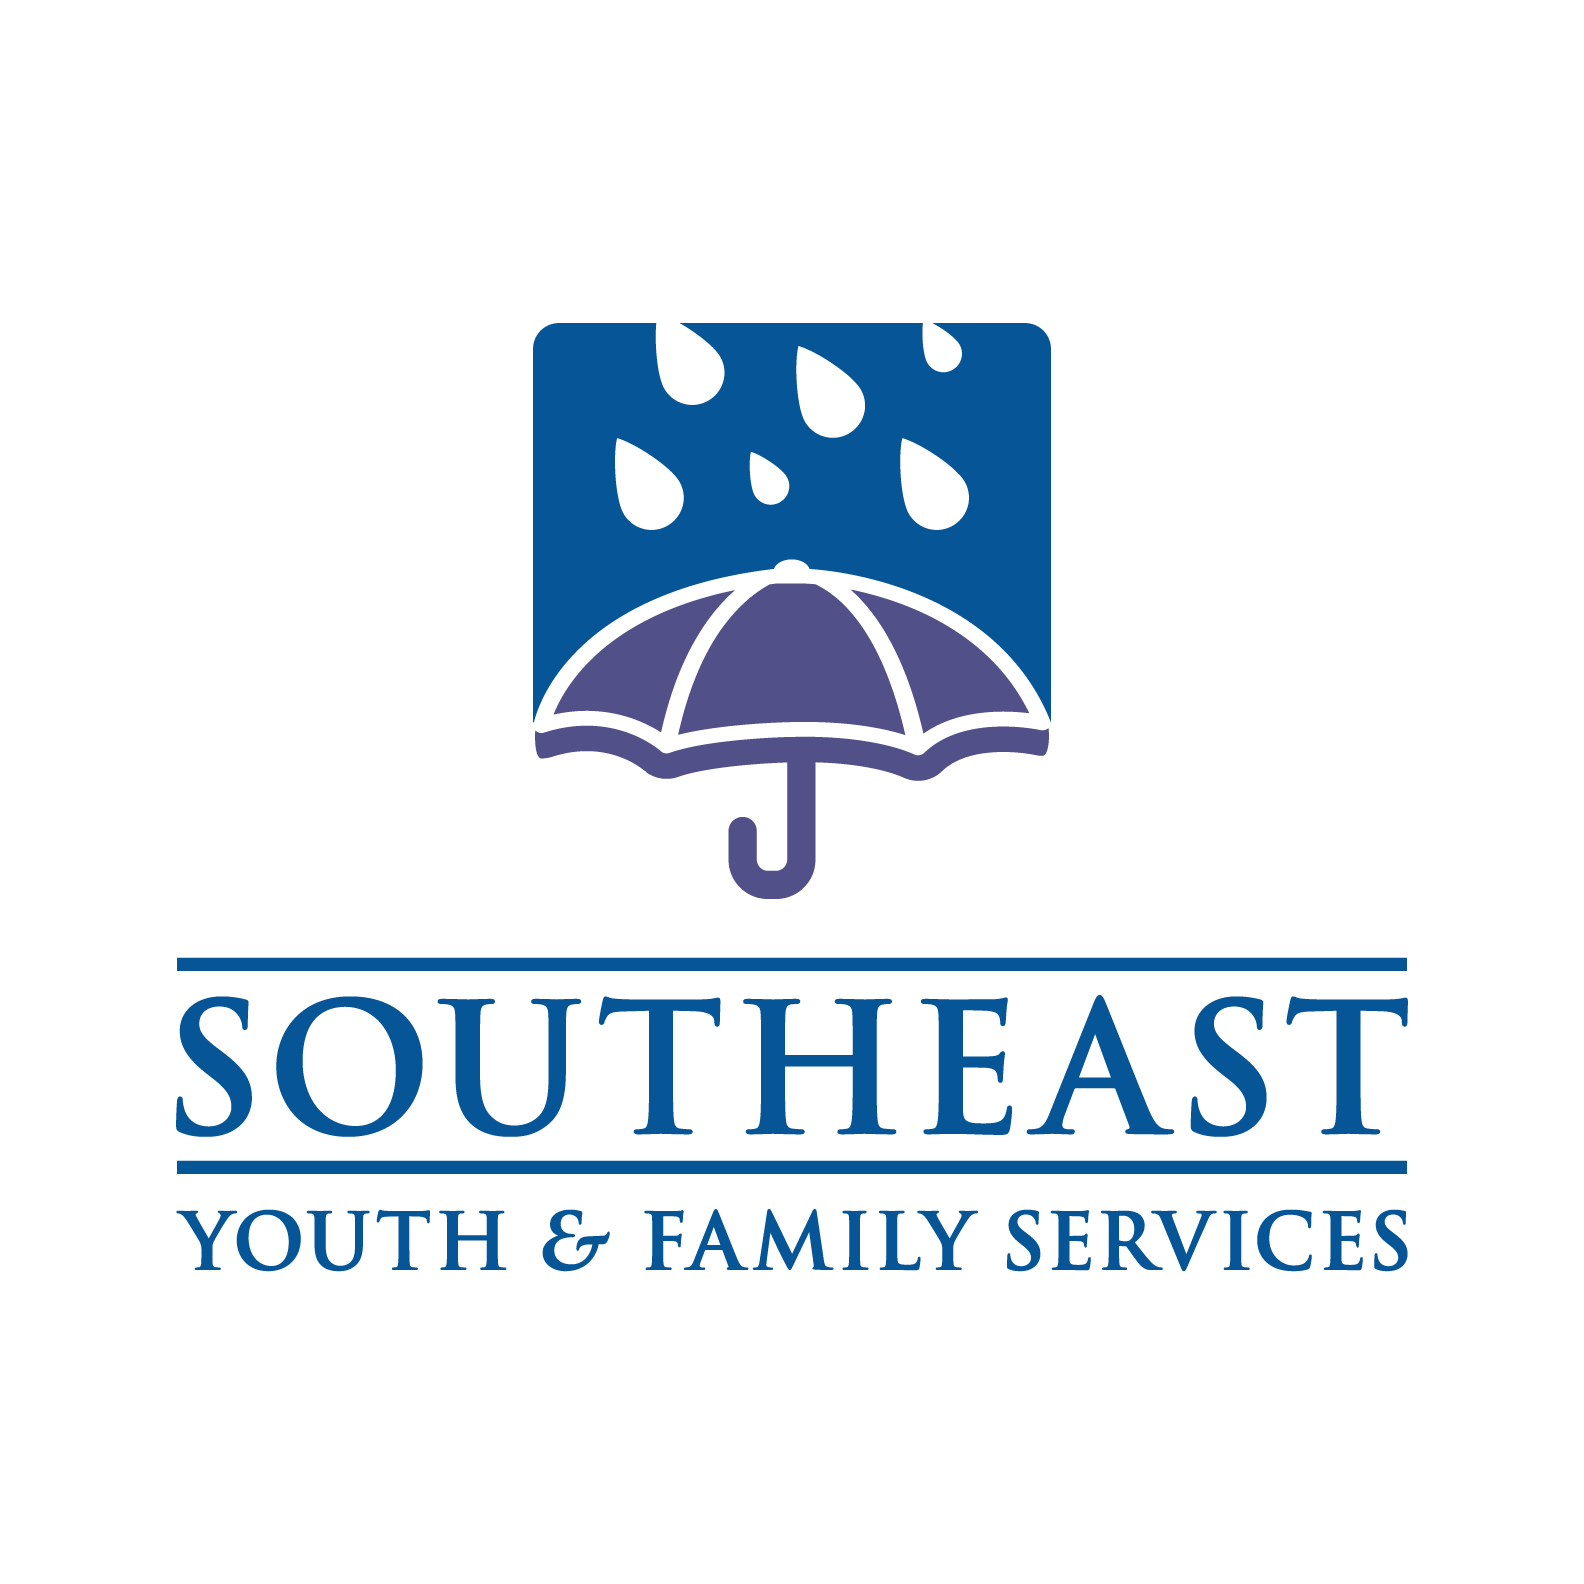 Southeast Youth & Family Services